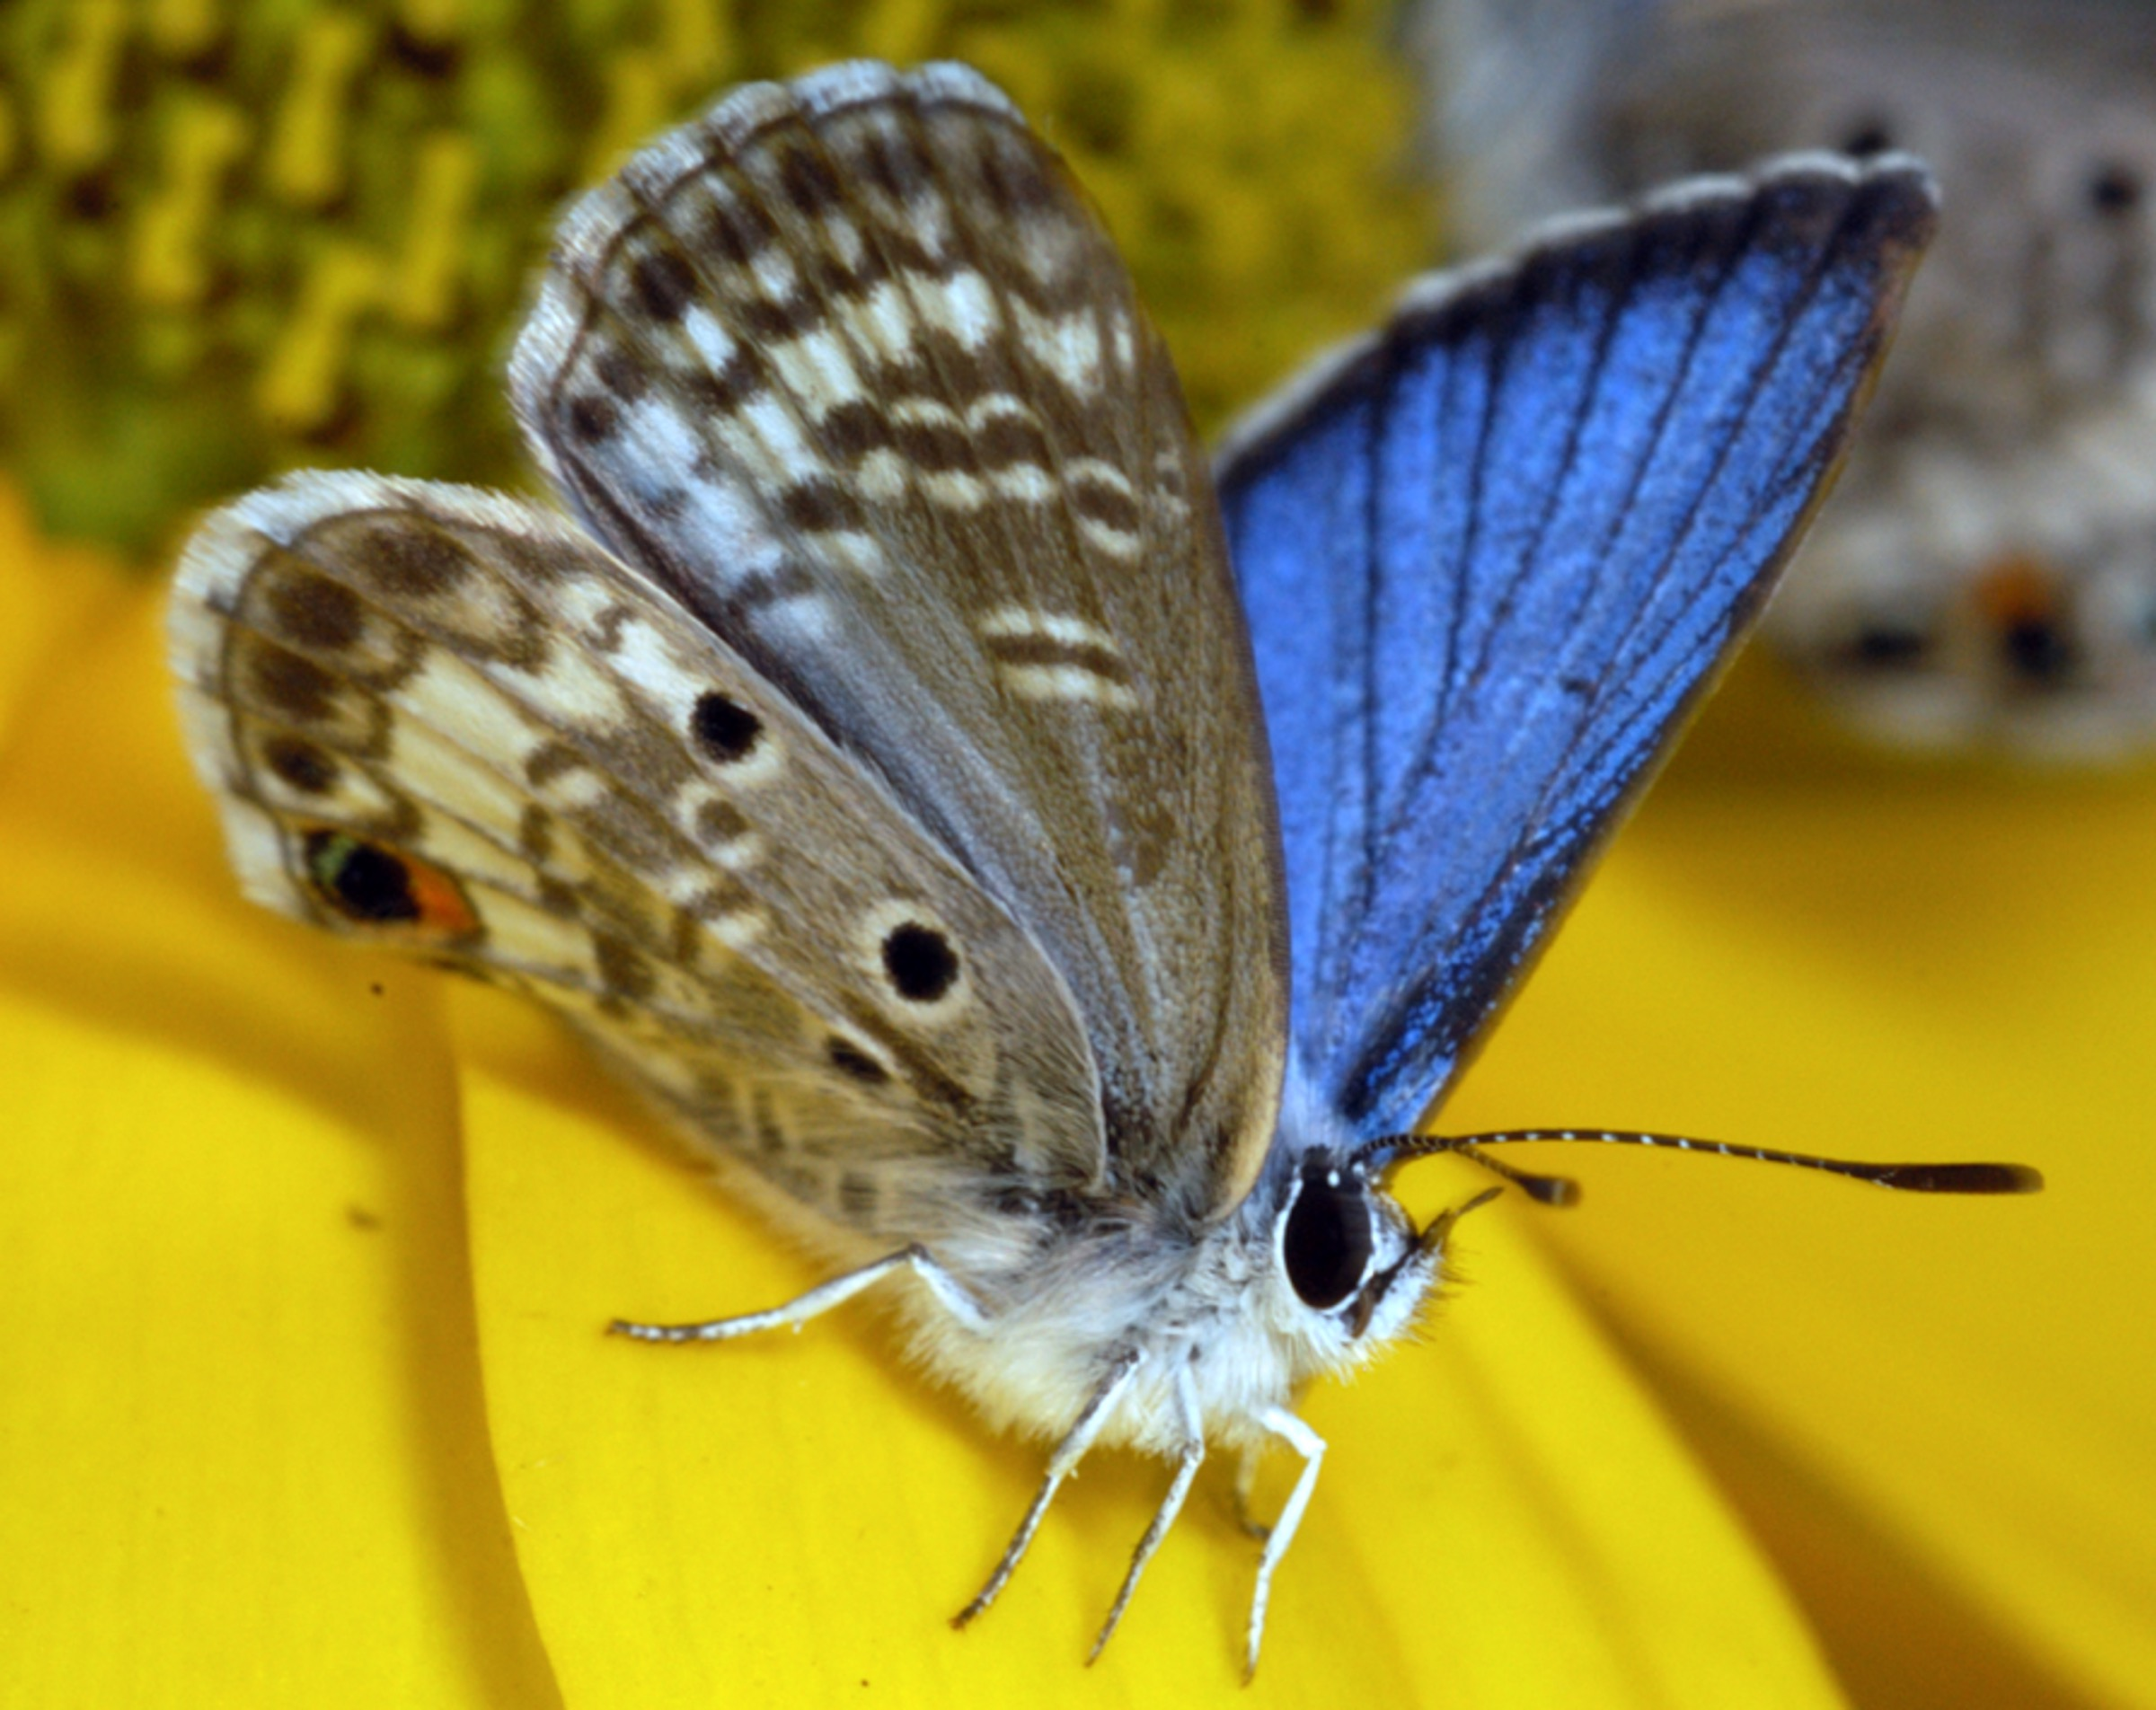 A male Miami blue butterfly (<em>Cyclargus thomasi bethunebakeri</em>) shows off its brilliant colors. Photograph by Jaret C. Daniels